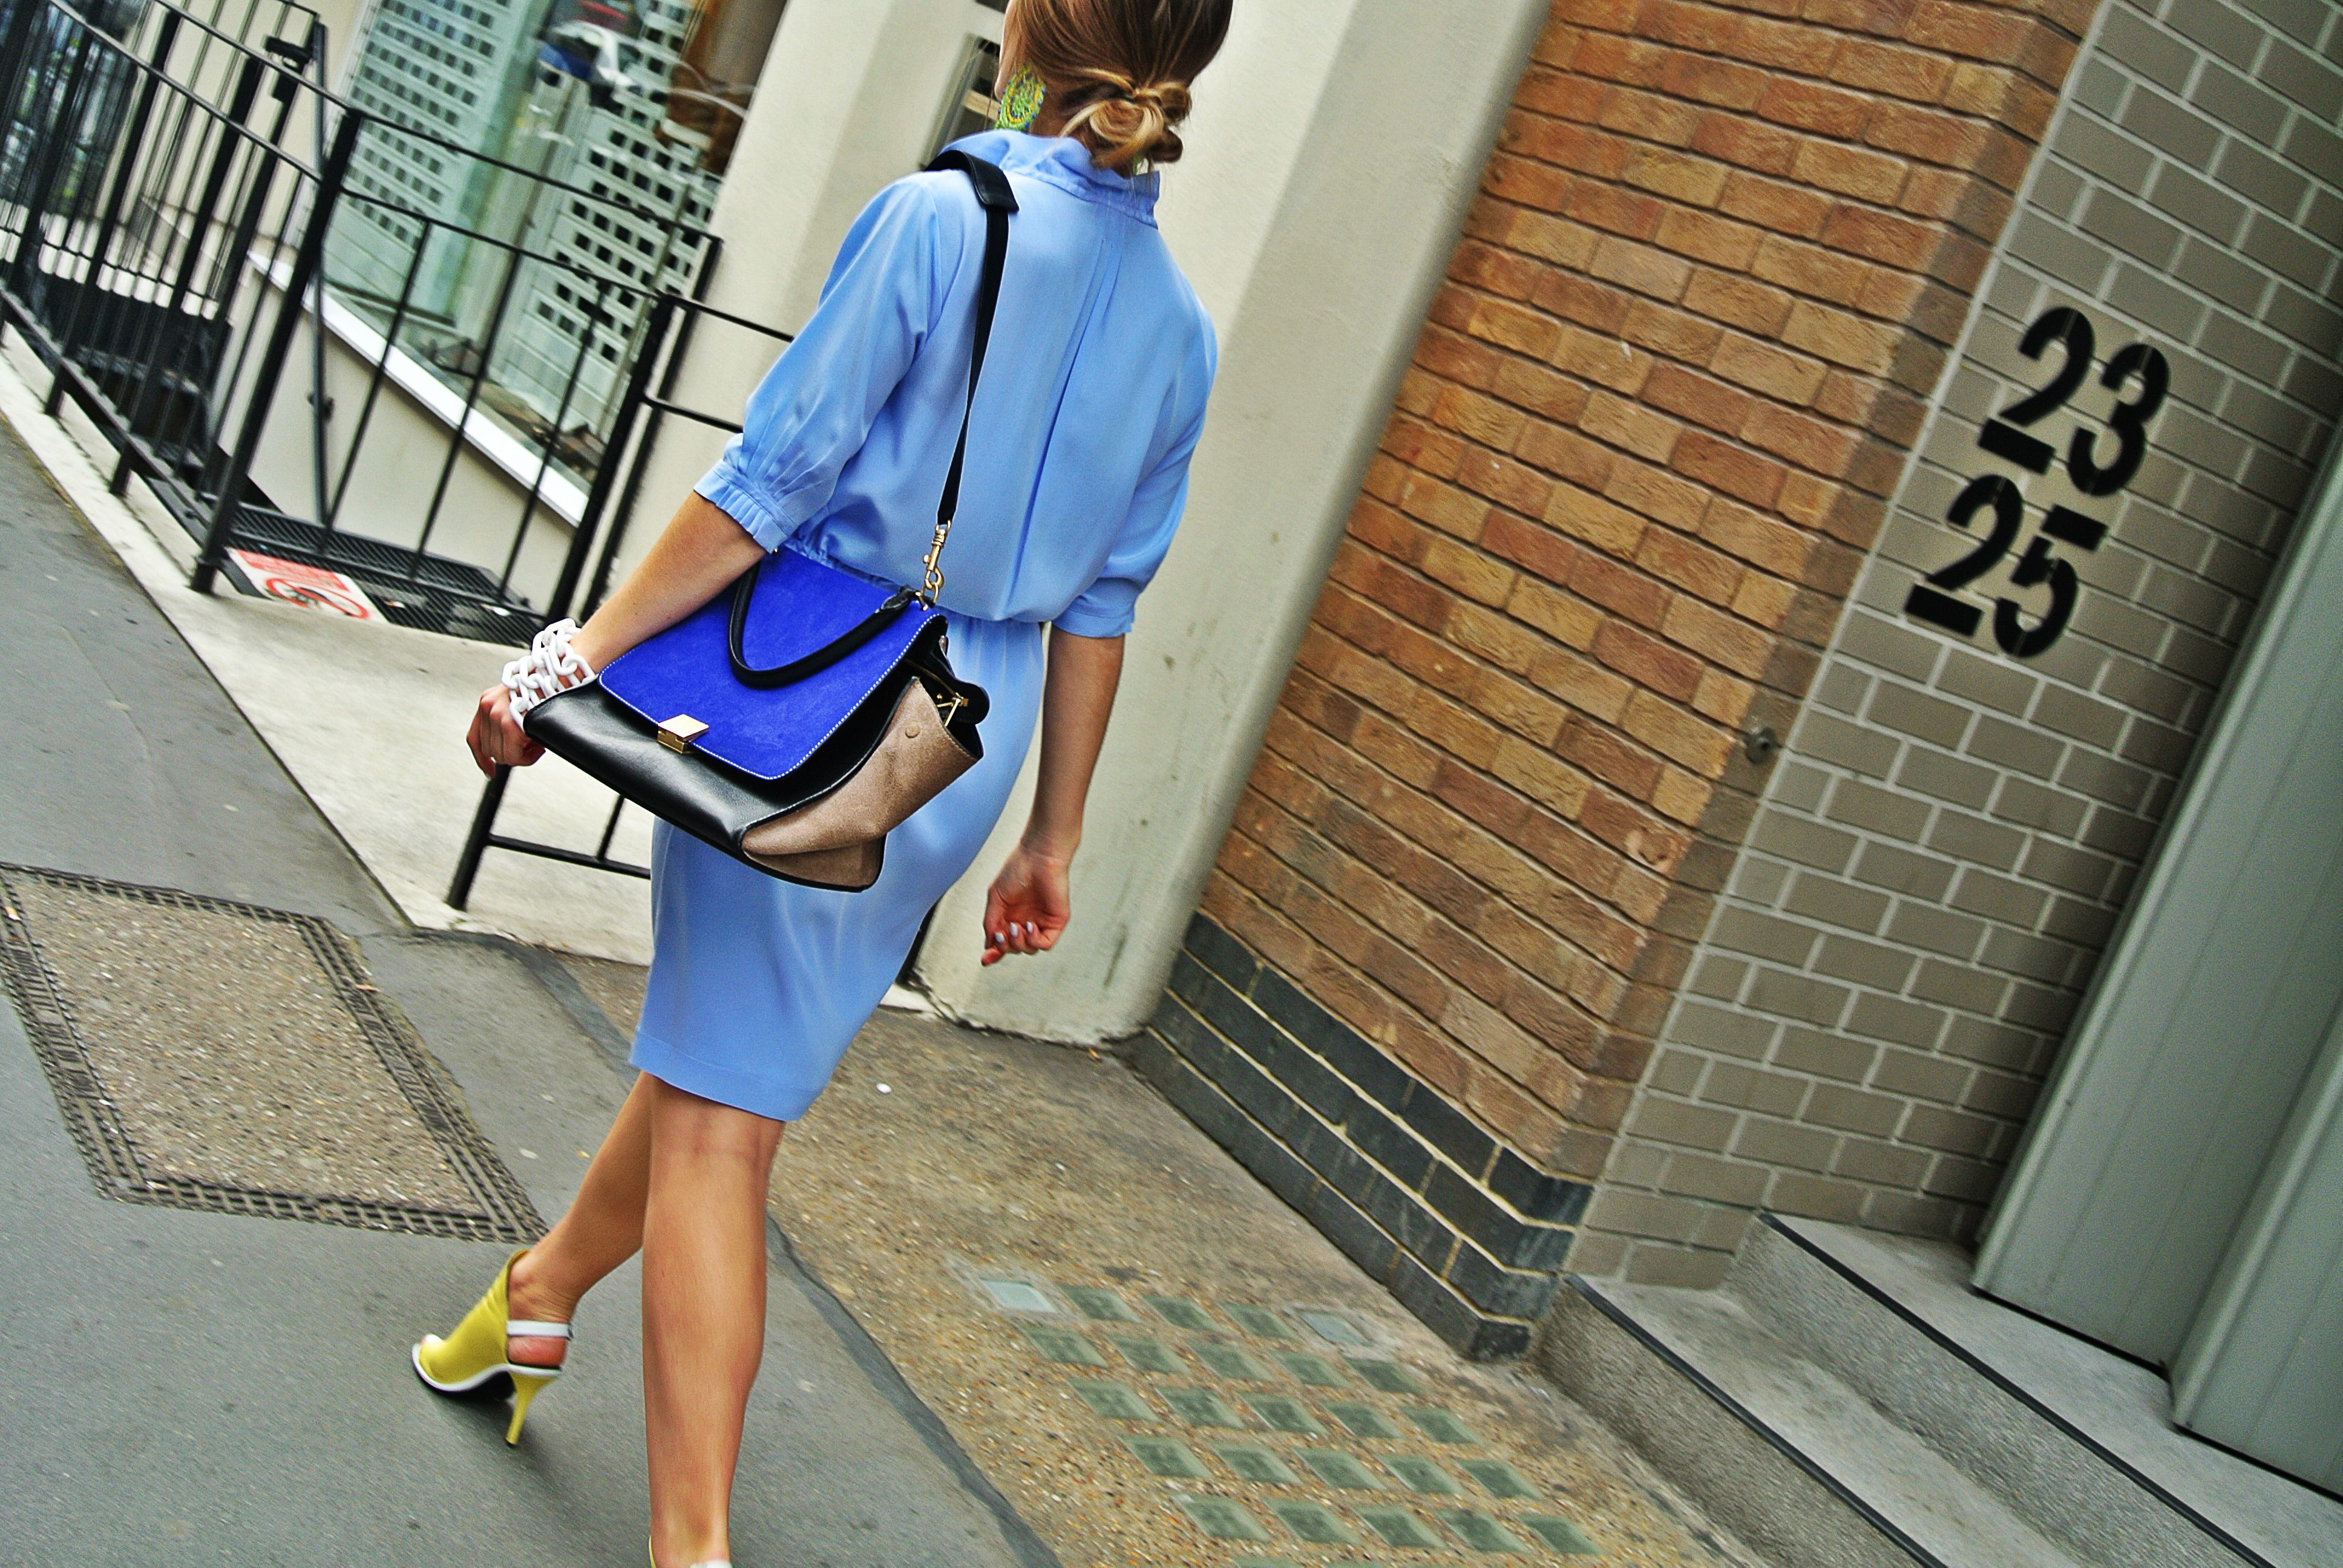 Perfect summer city look! Negarin dress, Balenciaga, Celine. Don't miss the chance to find your perfect outfit for this summer, take a look on: http://negarinlondon.com/store/